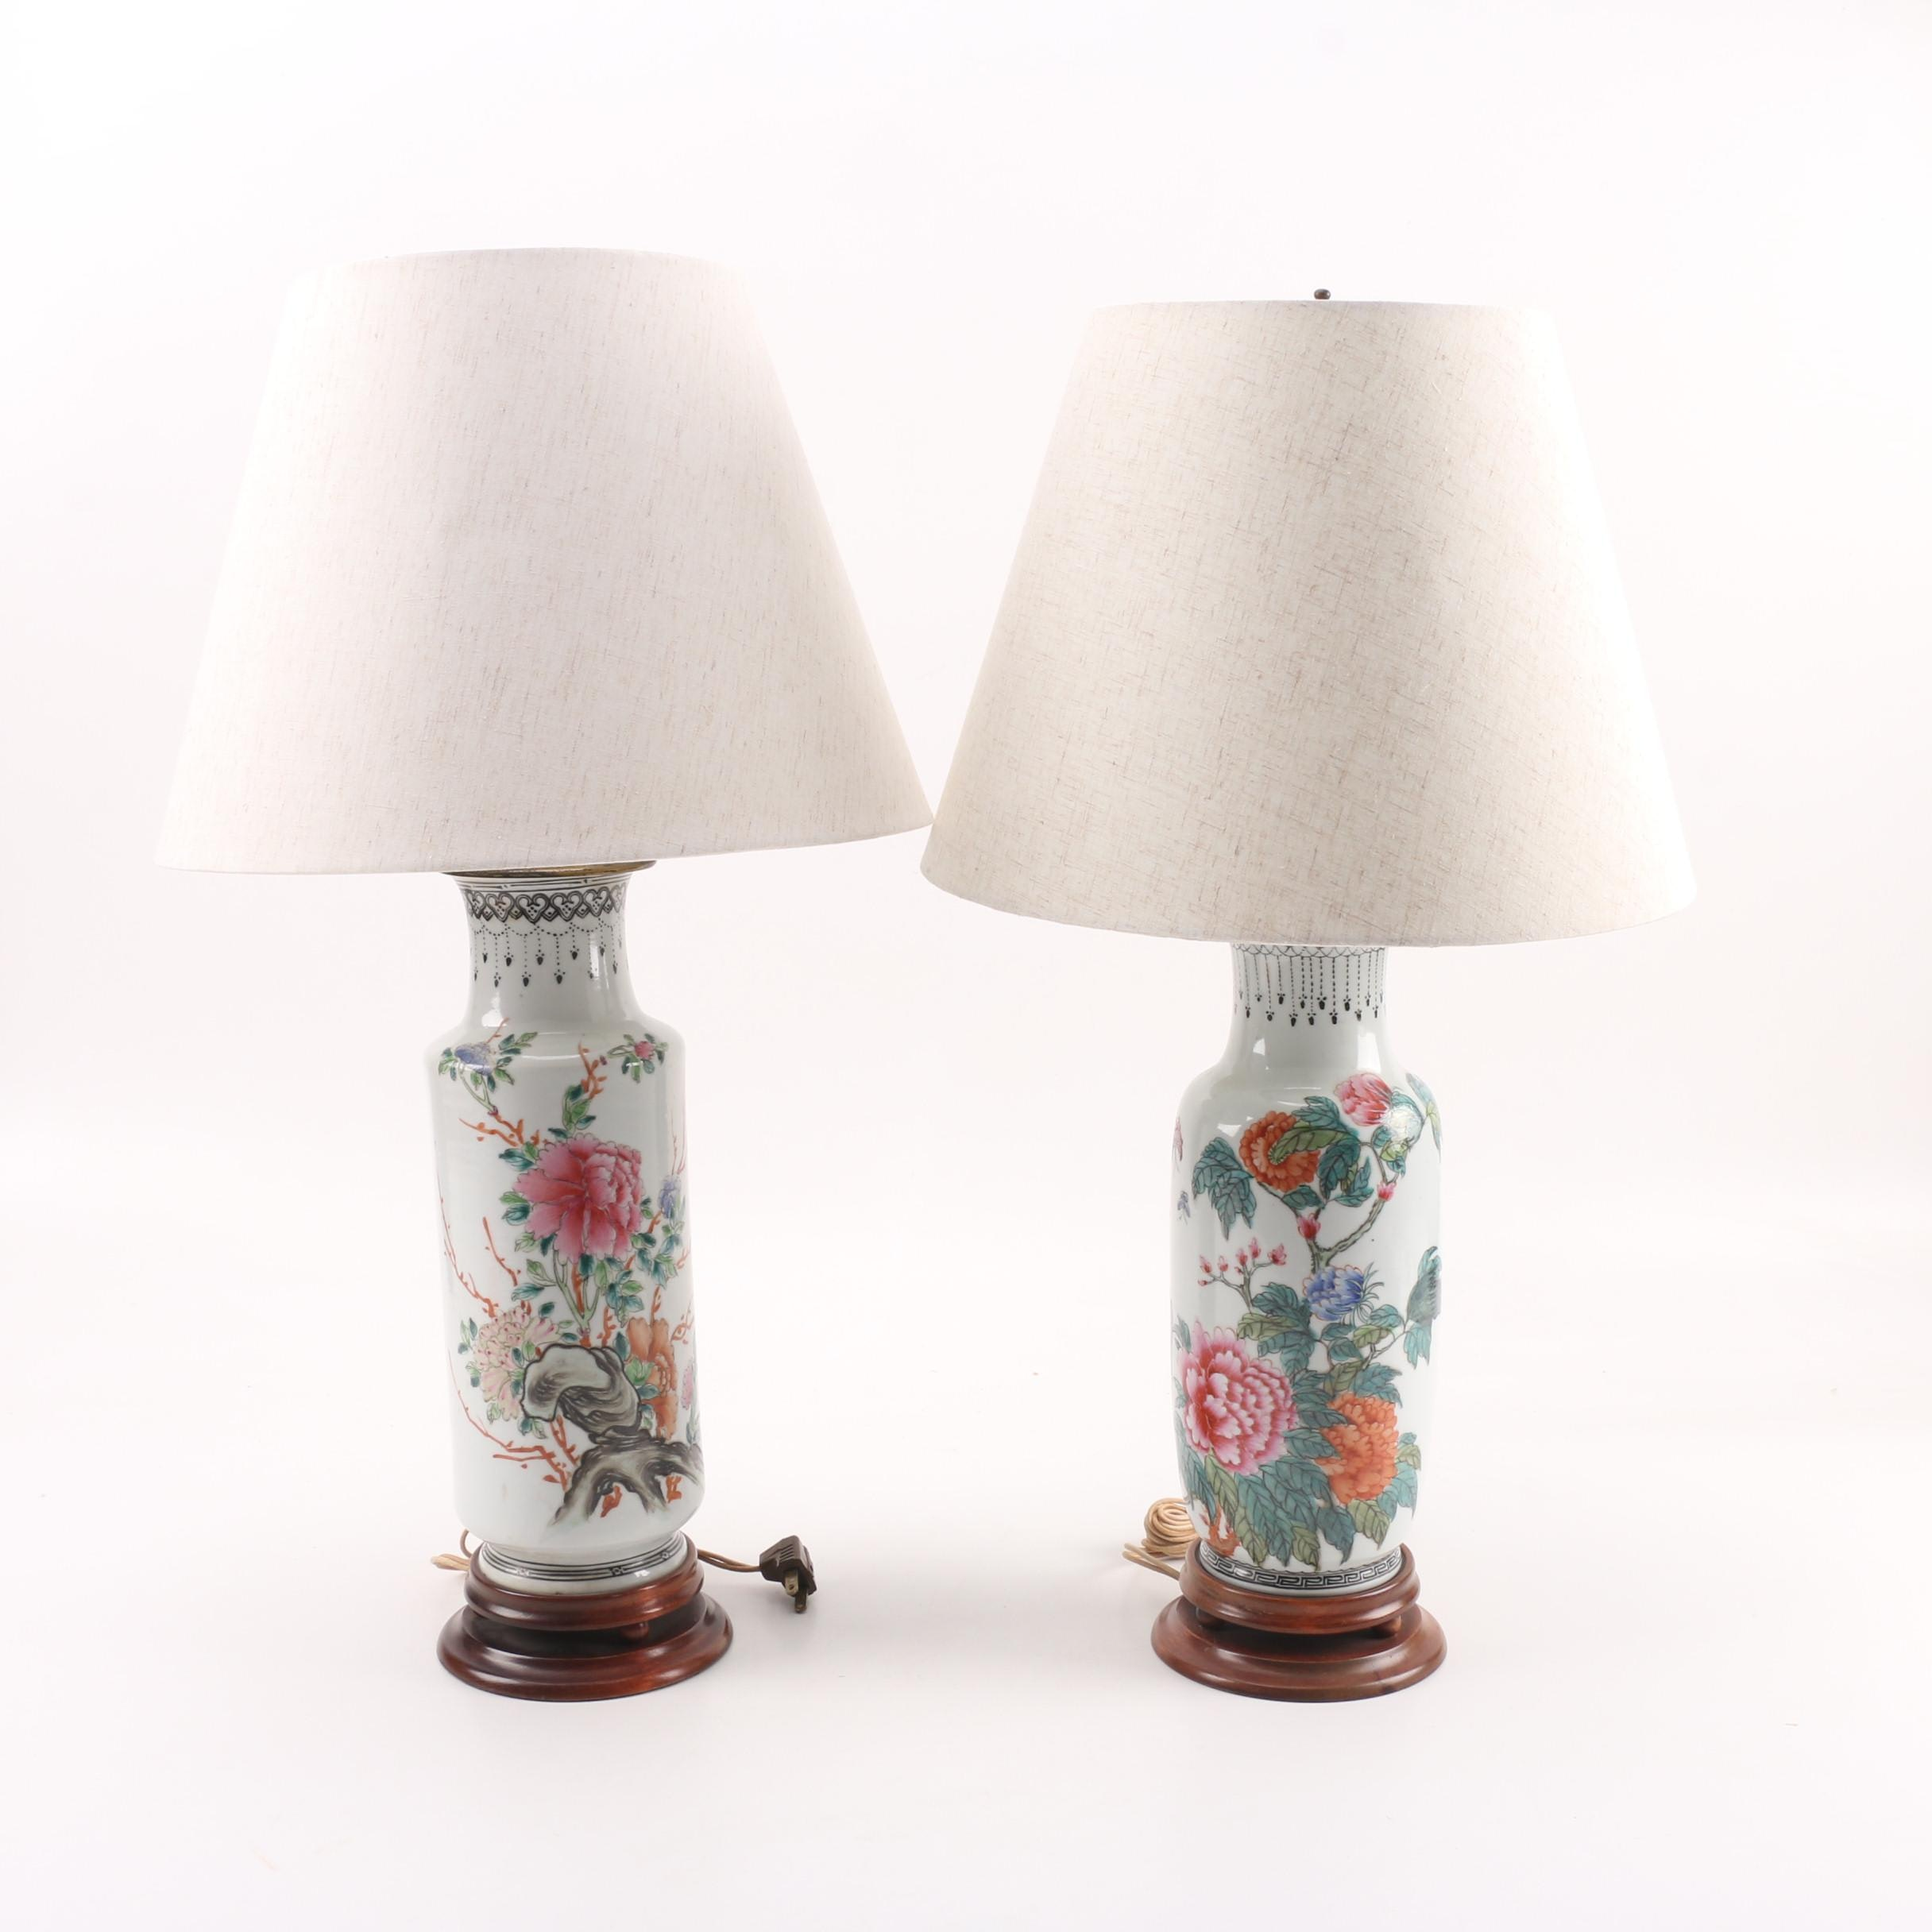 Republic Period Chinese Porcelain Lamps